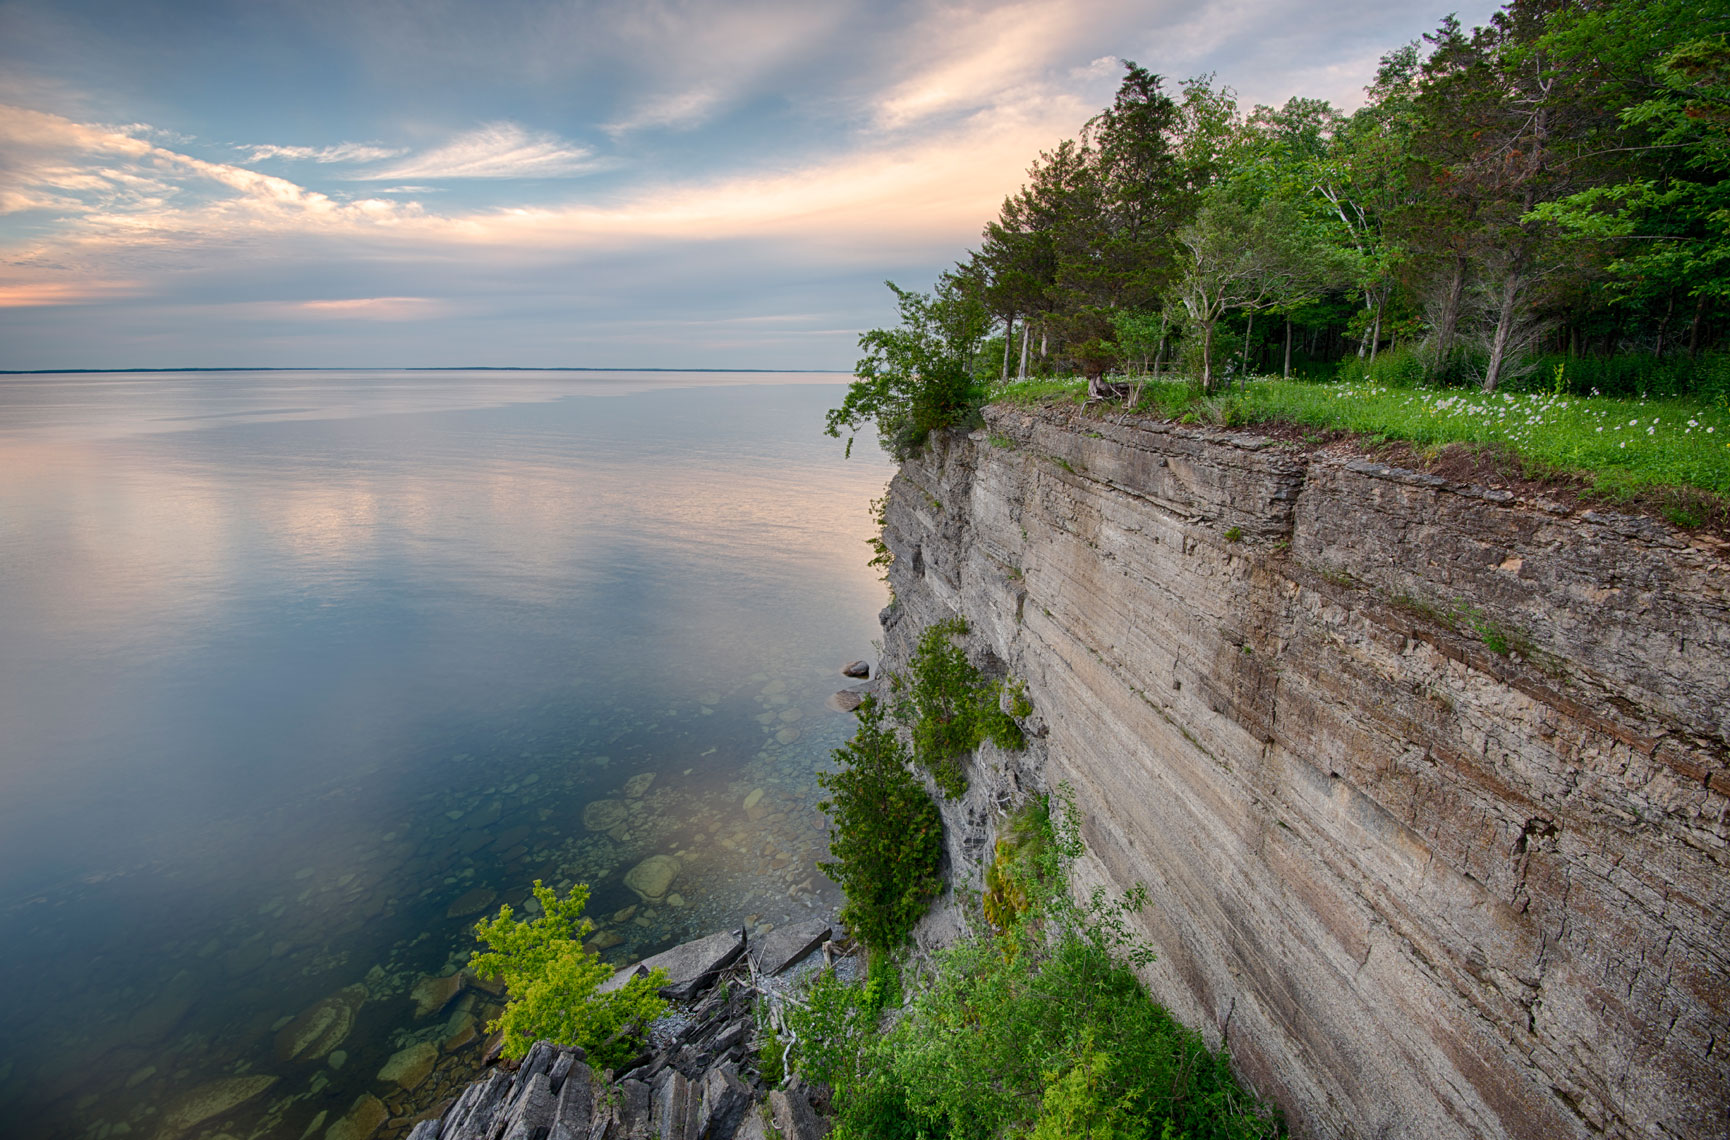 Limestone Bluffs, Lake Ontario, New York State